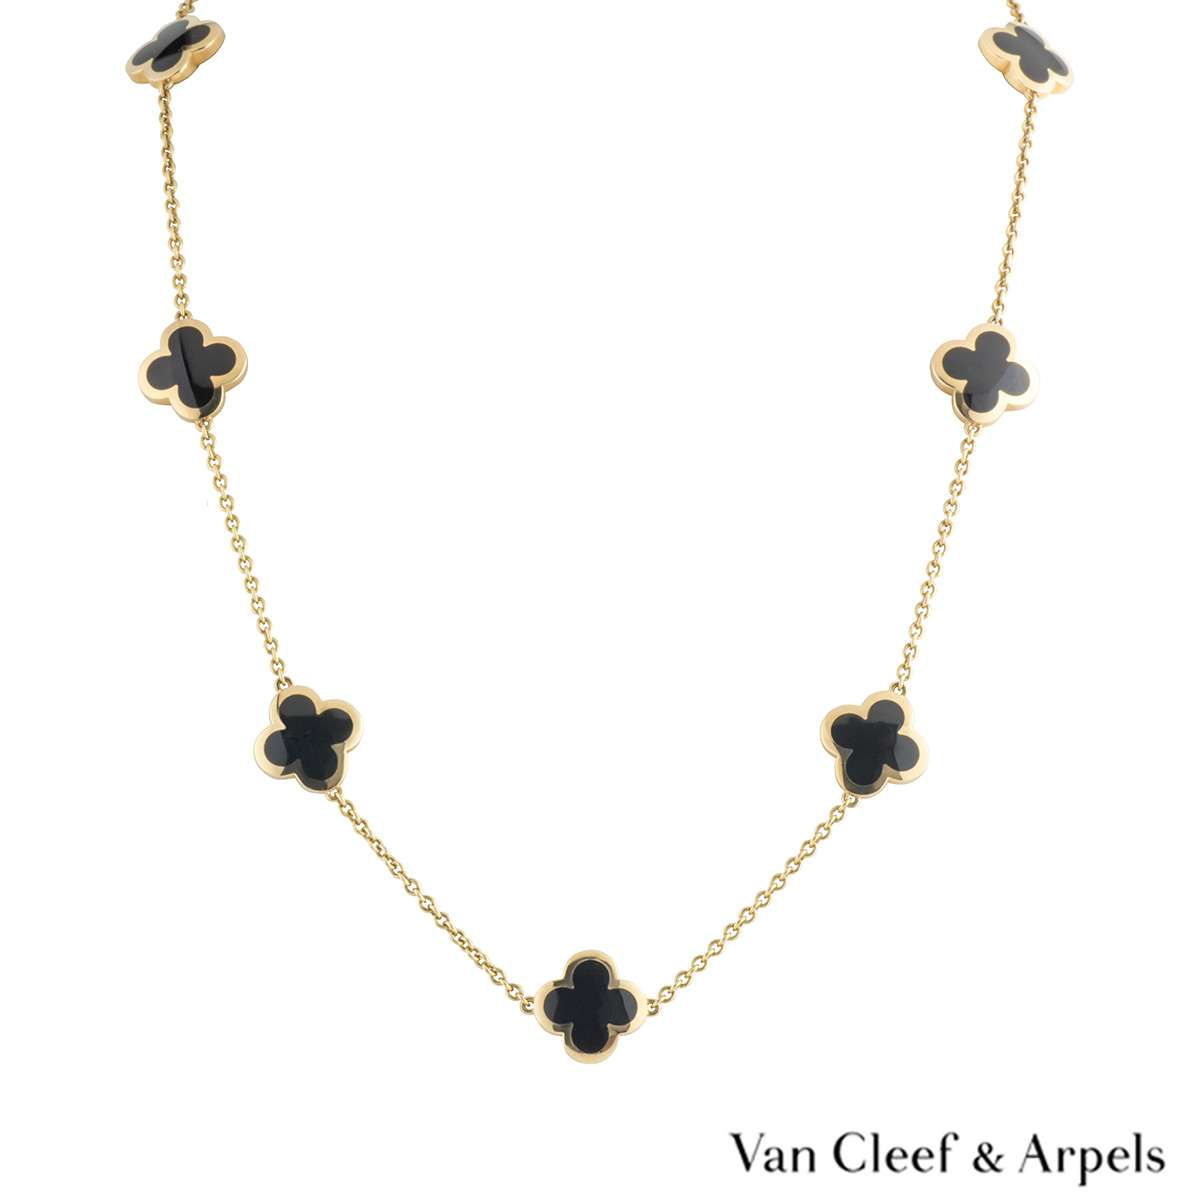 Van Cleef & Arpels Yellow Gold and Onyx Pure Alhambra Necklace